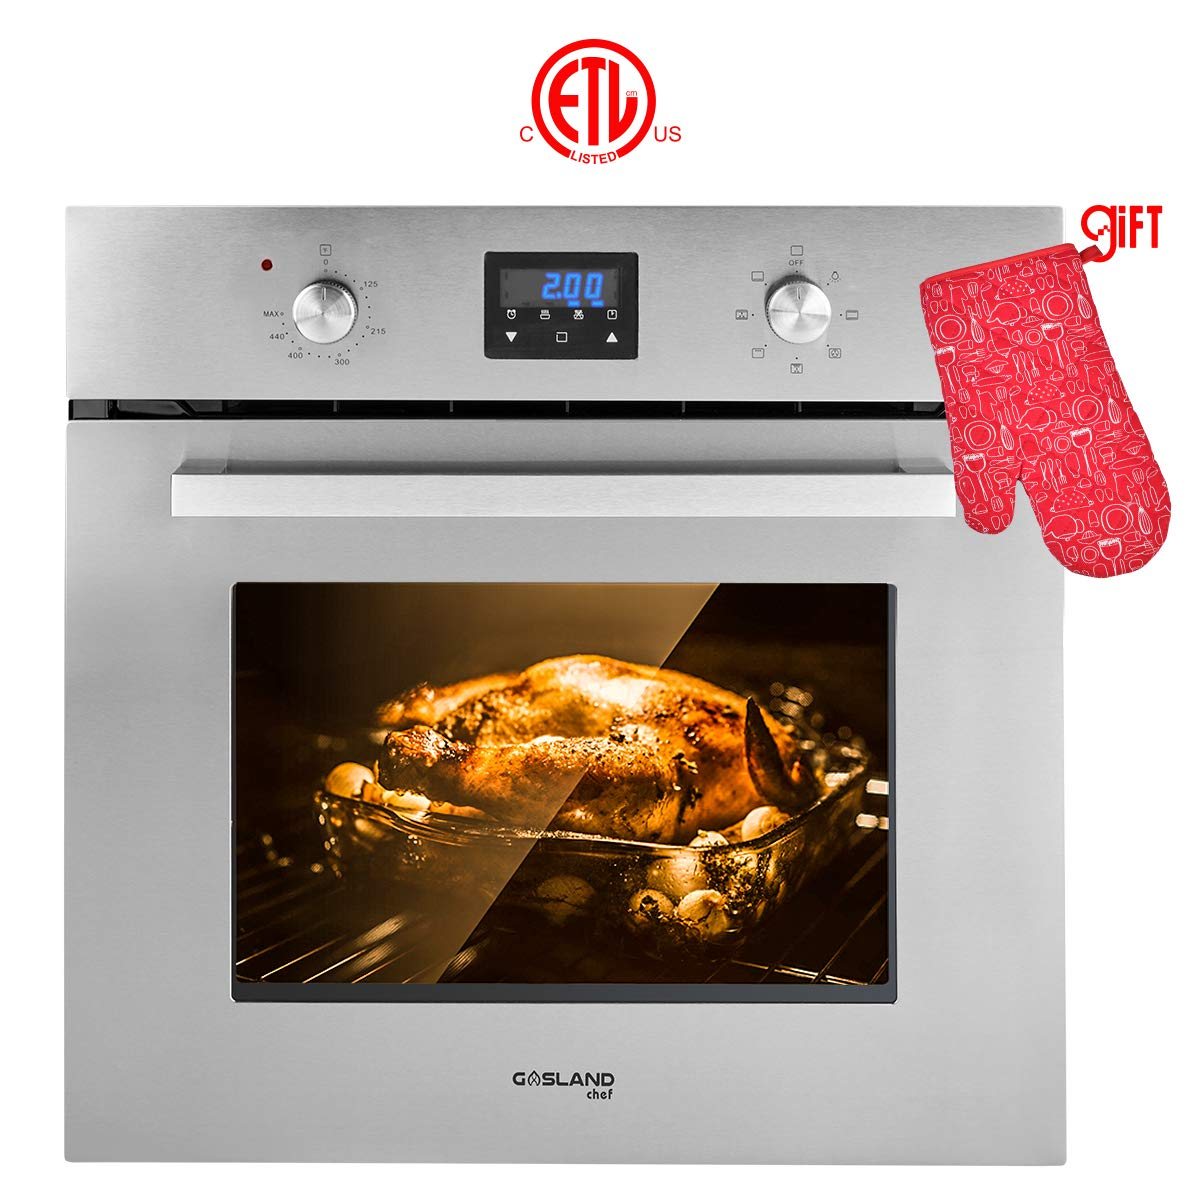 Single Wall Oven, Gasland Chef ES609DS 24'' Built-in Electric Single Wall Oven, 9 Cooking Function, Stainless Steel Electric Wall Oven with Cooling Down Fan, 3 Layer Glass, ETL Safety Certified by GASLAND